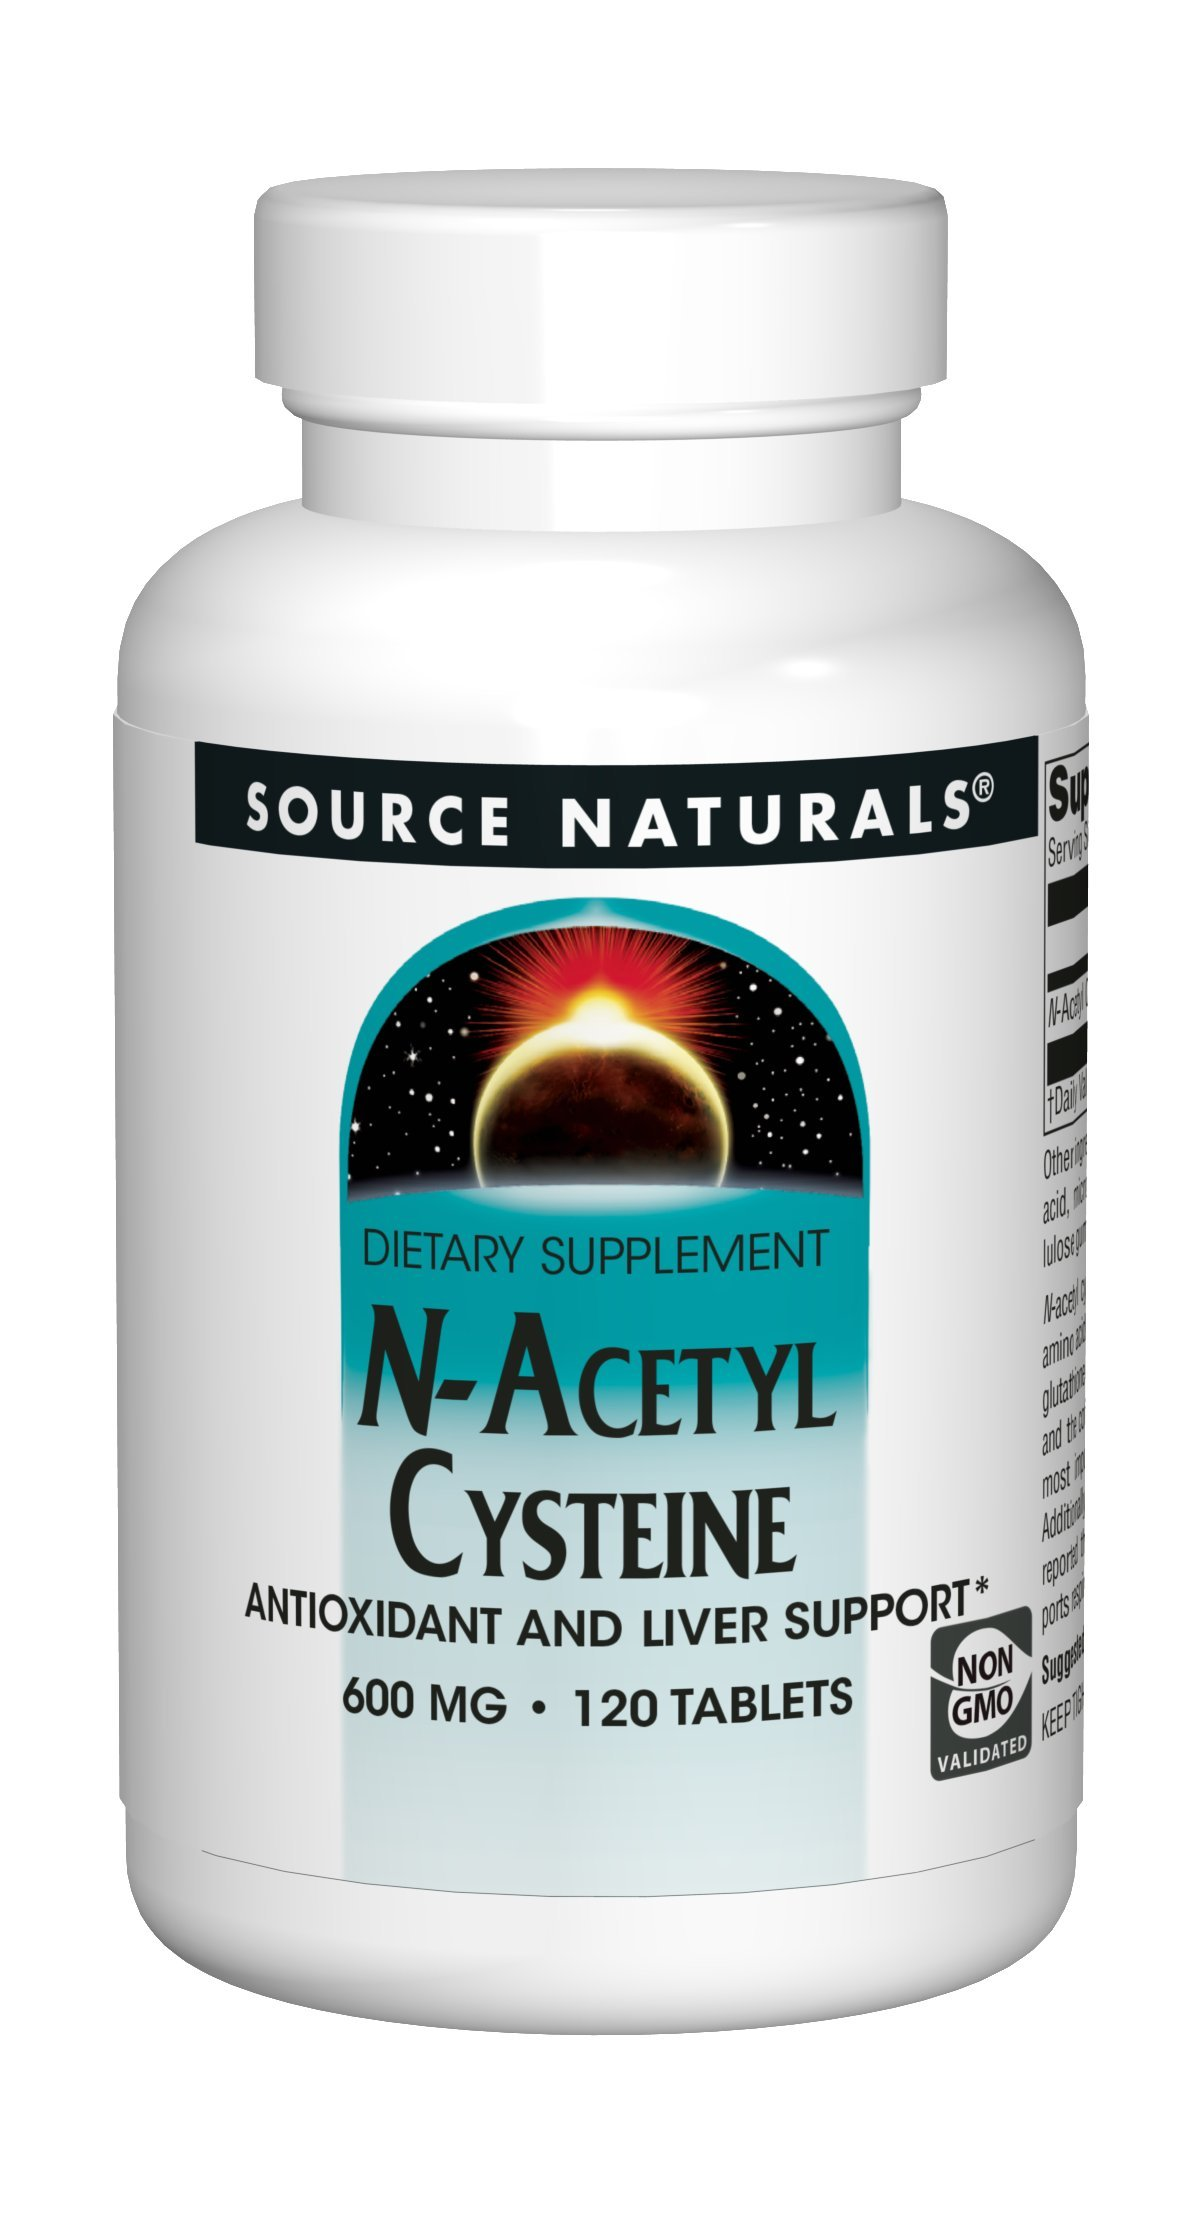 Source Naturals N-Acetyl Cysteine 600mg Powerful Antioxidant Protection - Pure Enzymes - 120 Tablets